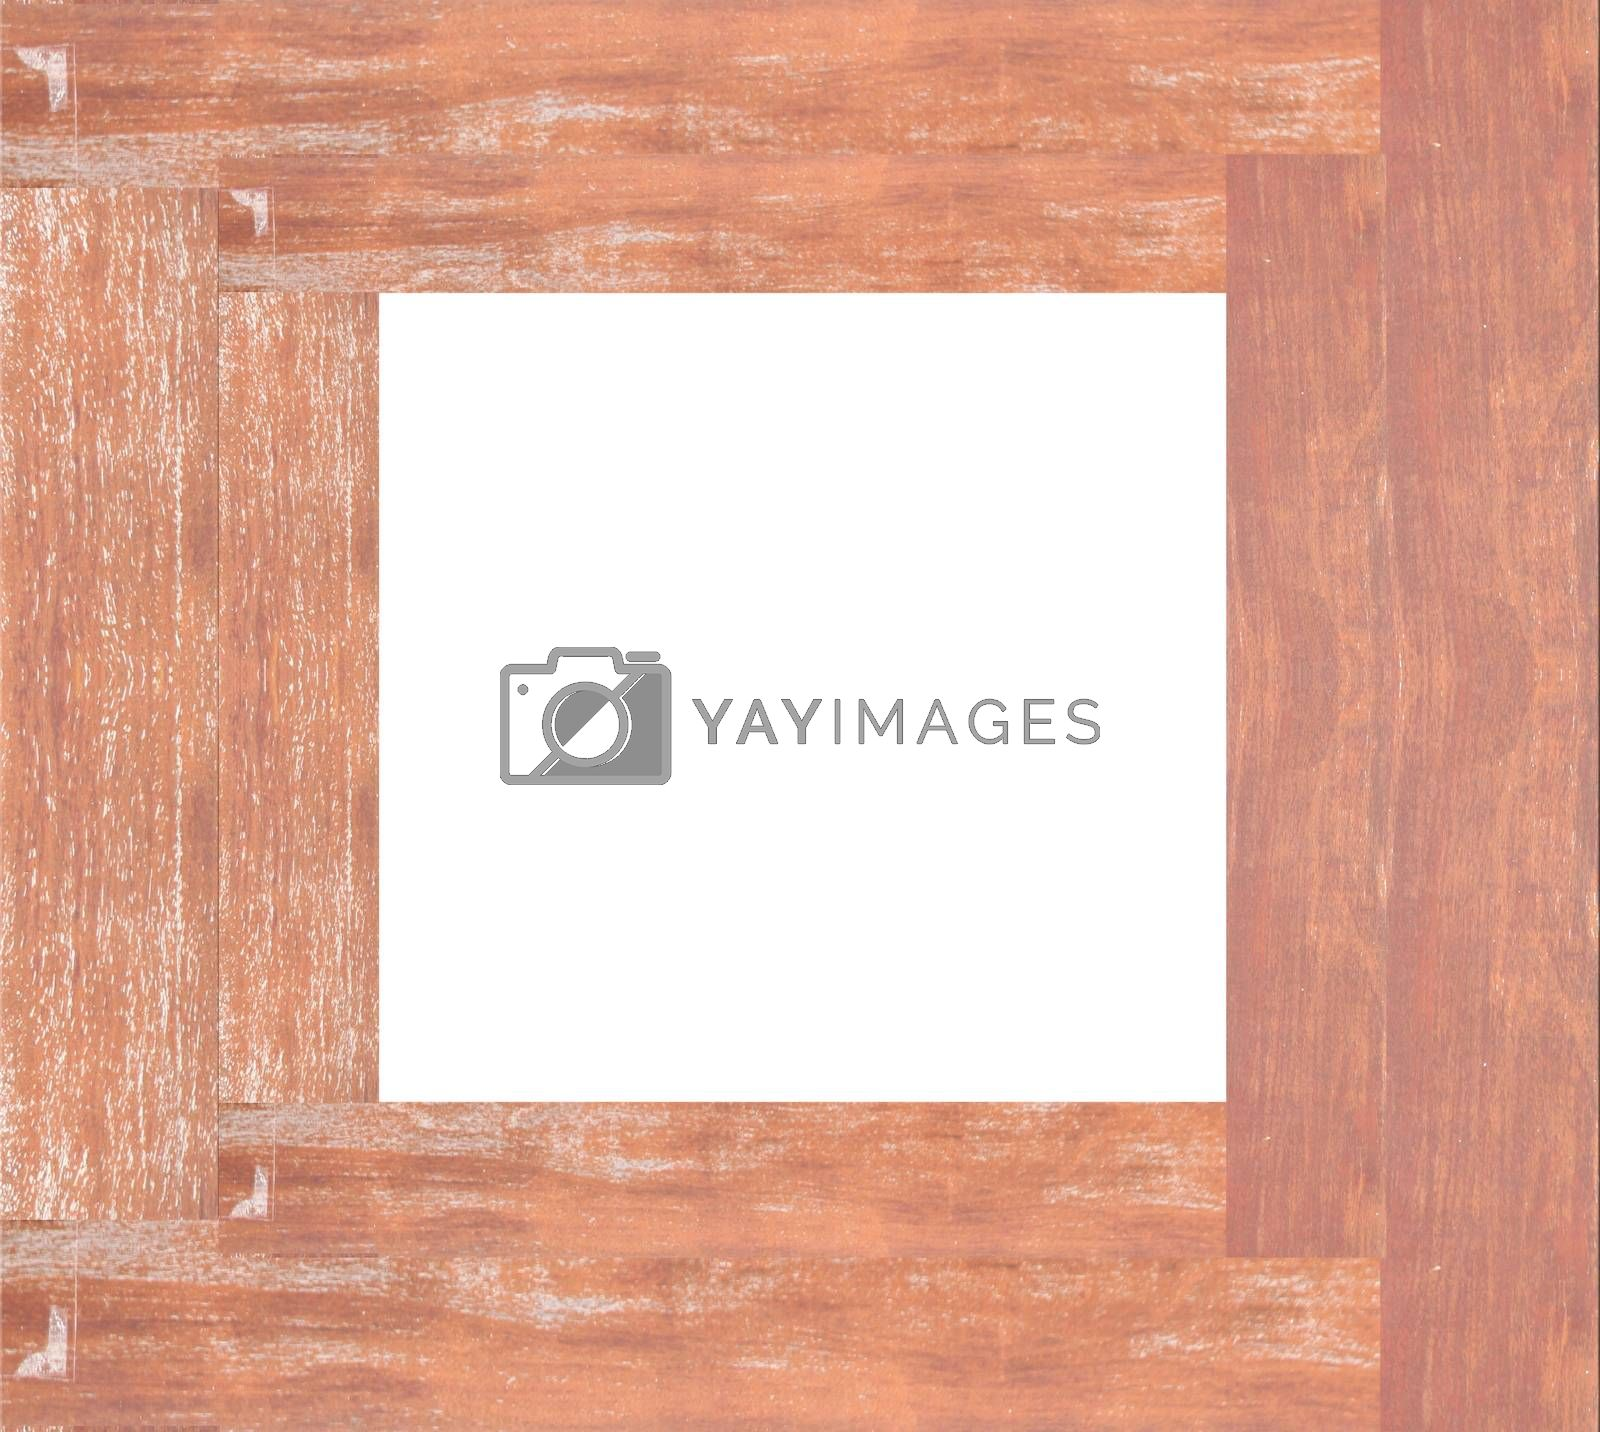 Royalty free image of Old wooden frame isolated. by meepoohyaphoto